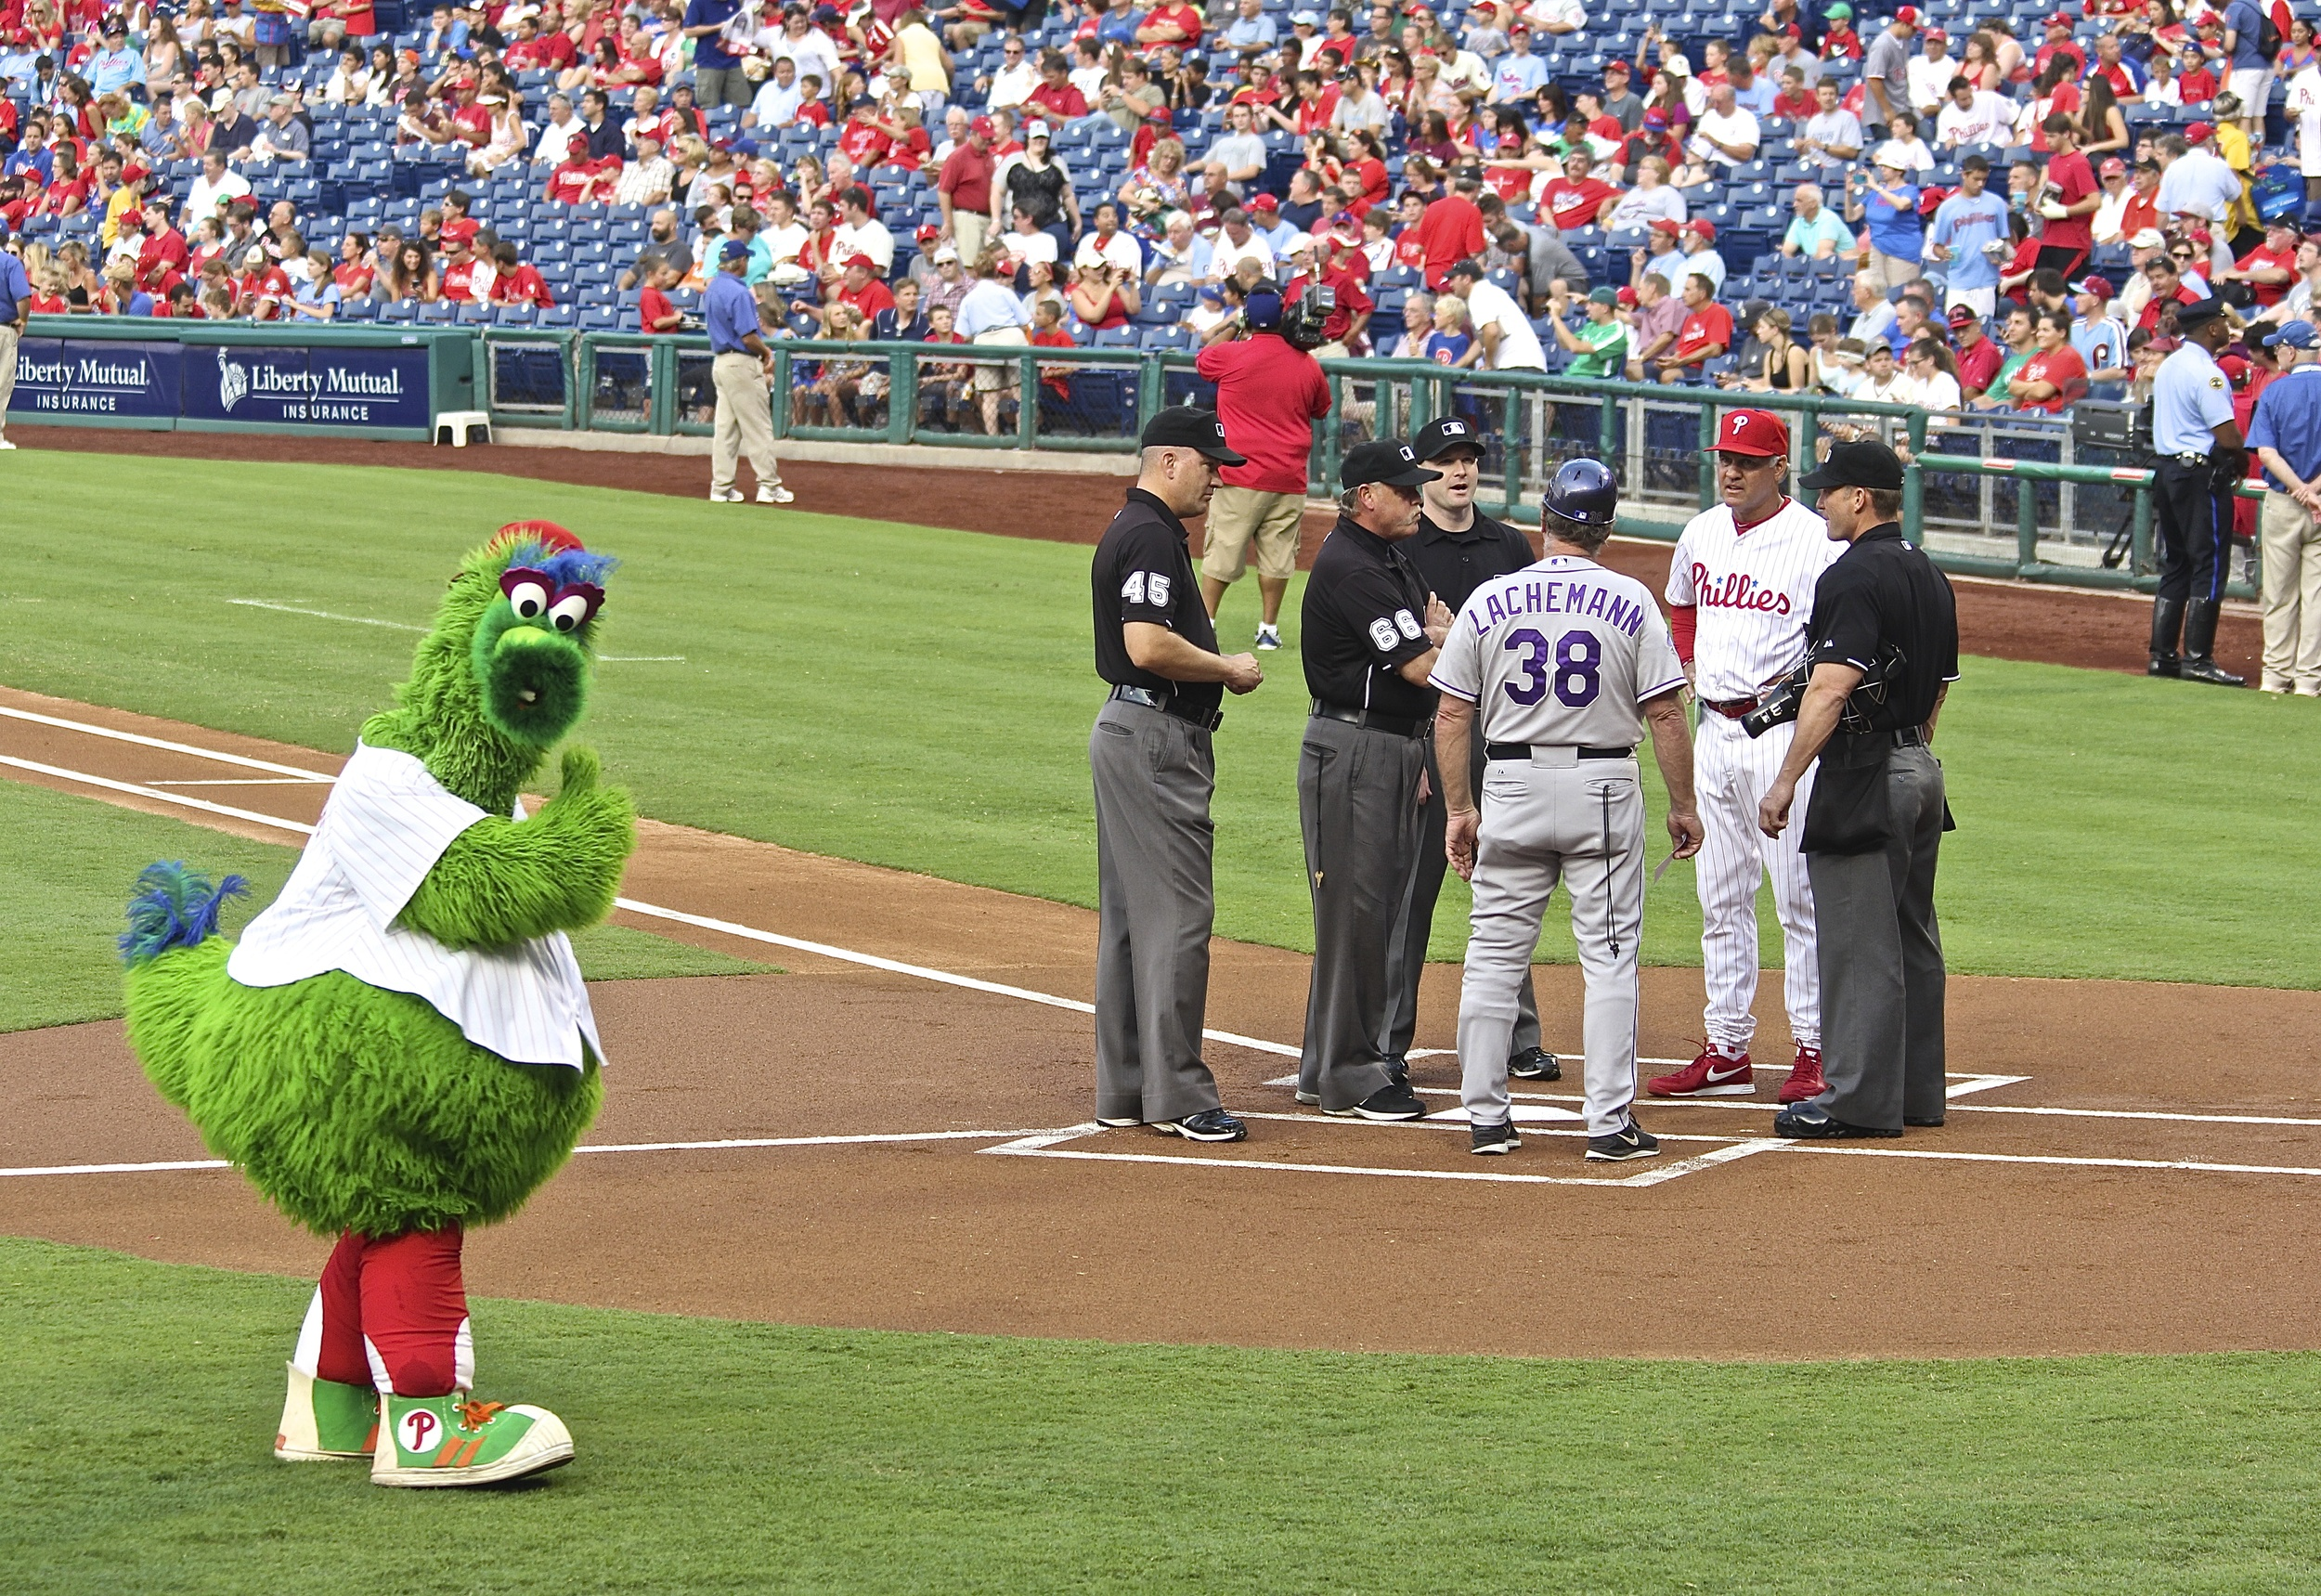 Phanatic gives me a thumbs up